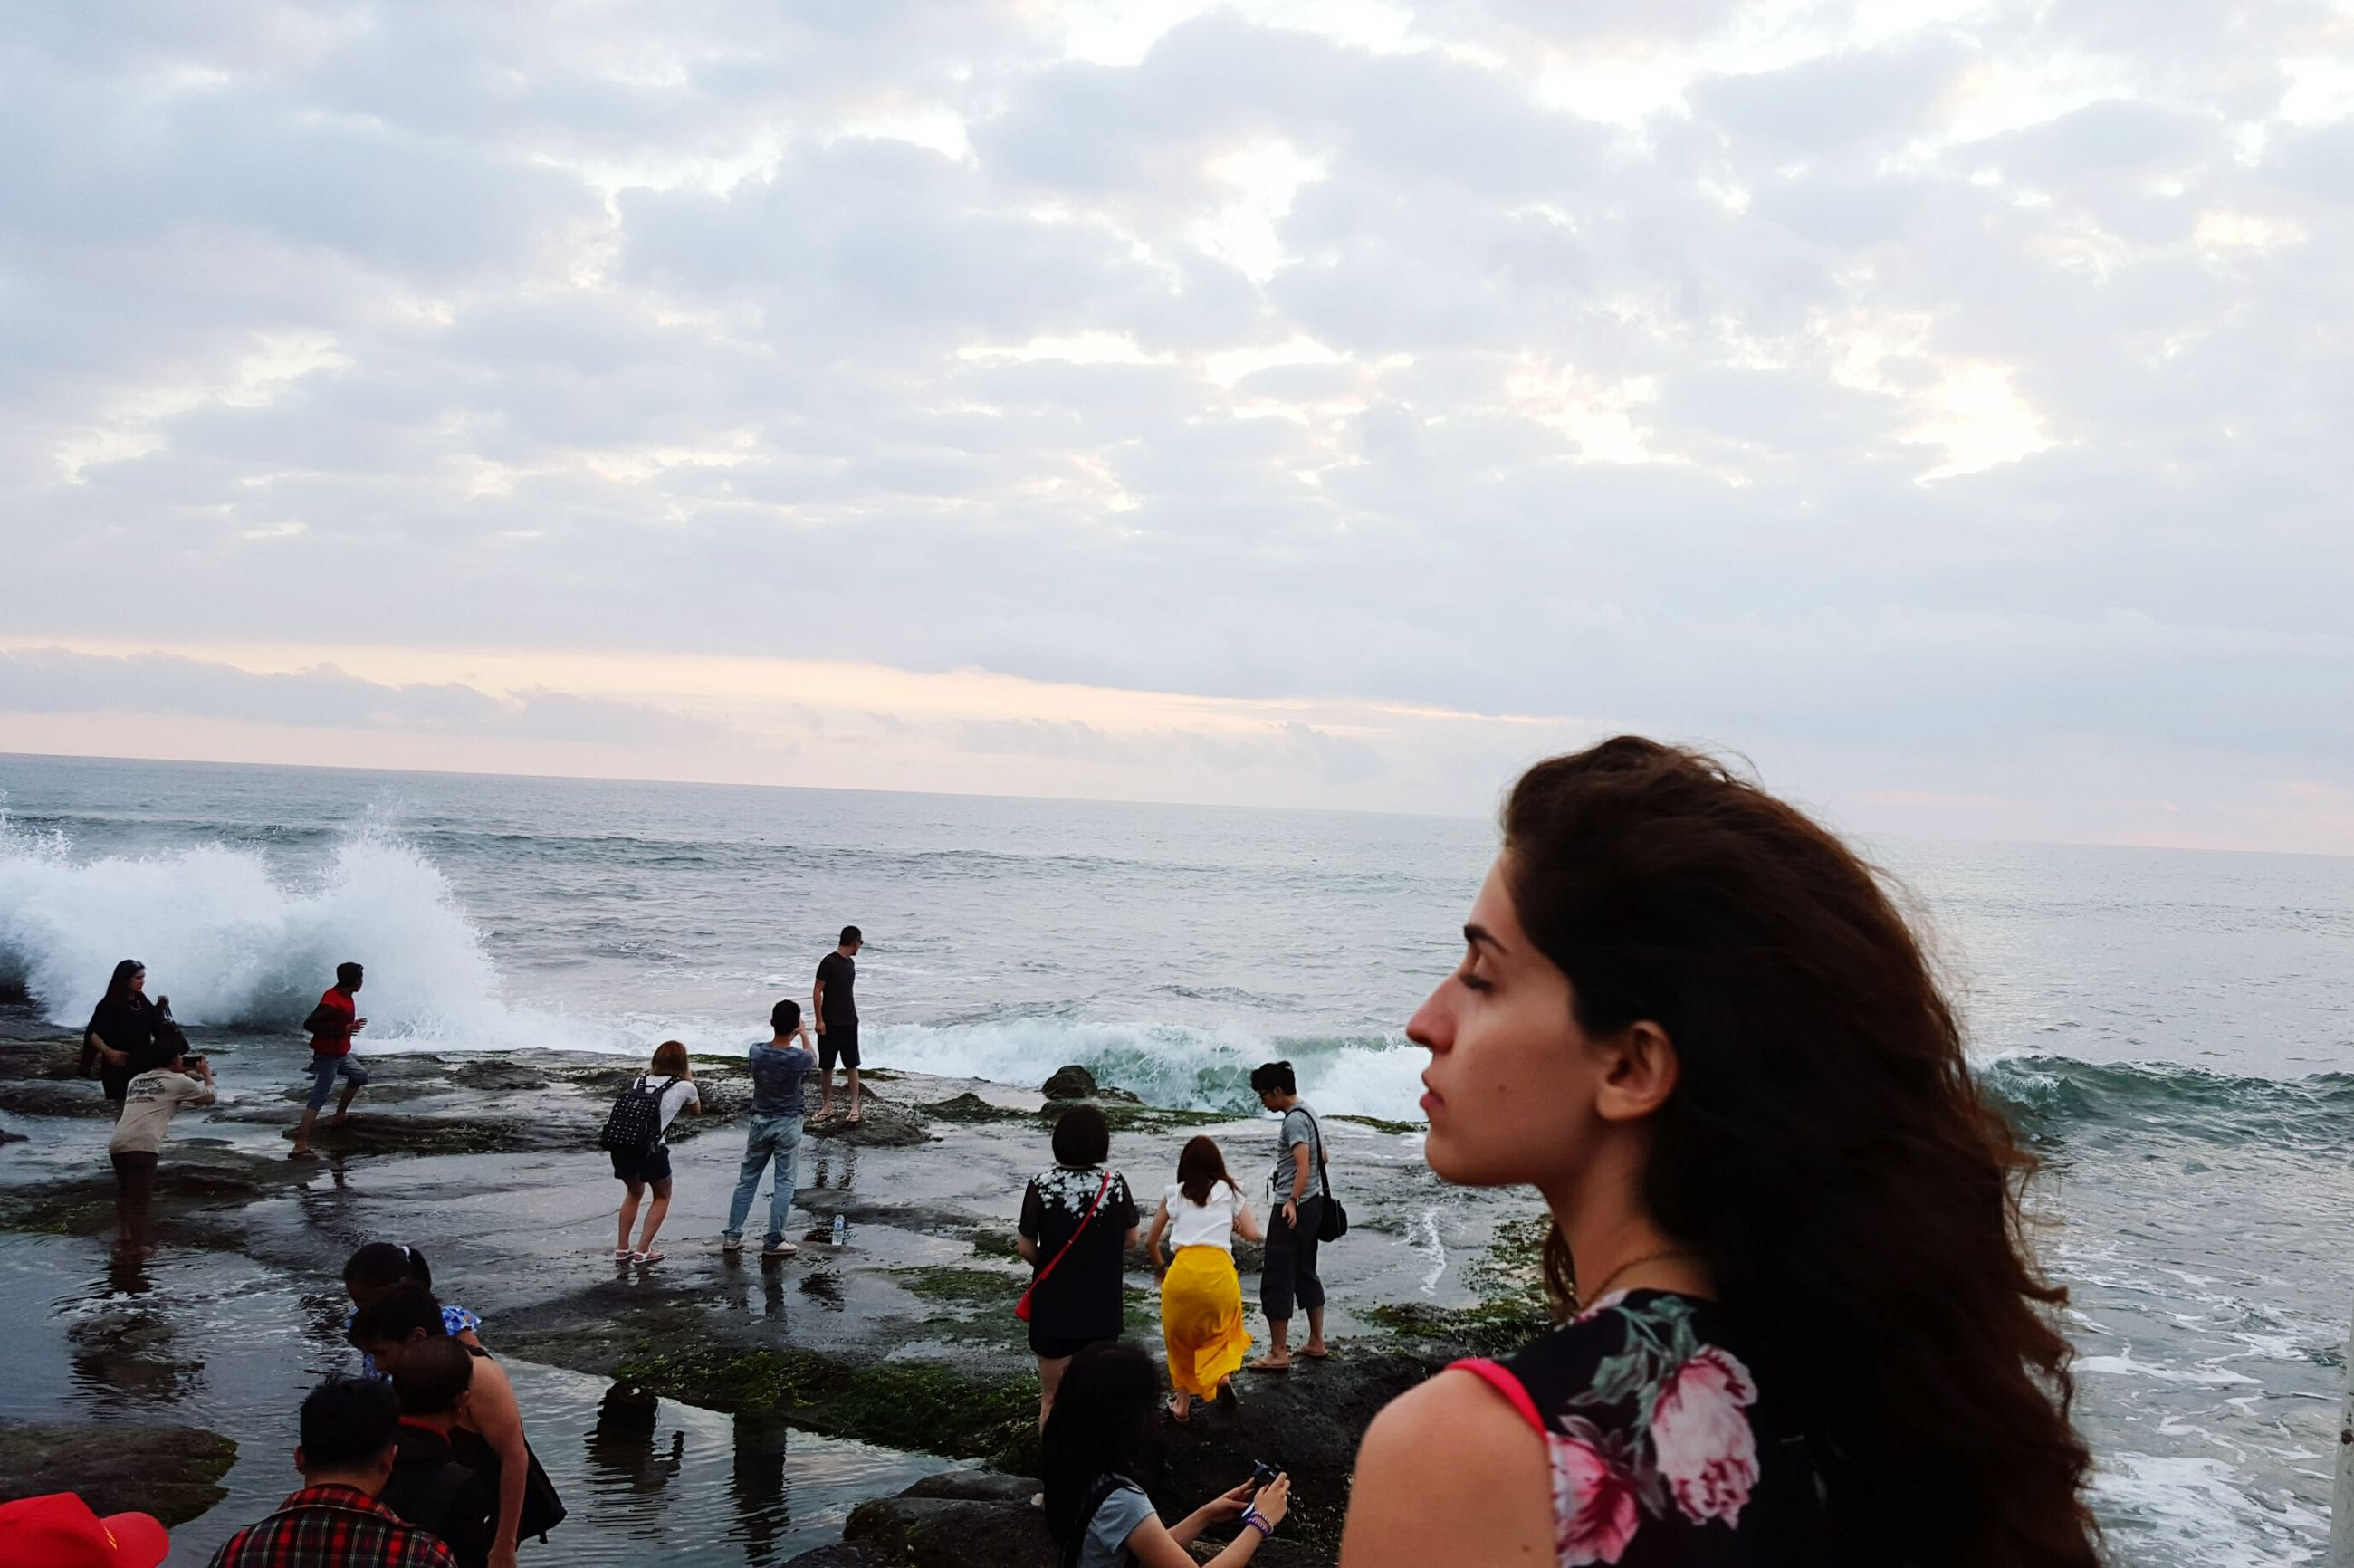 sea, water, lifestyles, leisure activity, horizon over water, beach, sky, vacations, enjoyment, shore, person, cloud - sky, togetherness, beauty in nature, nature, headshot, scenics, standing, weekend activities